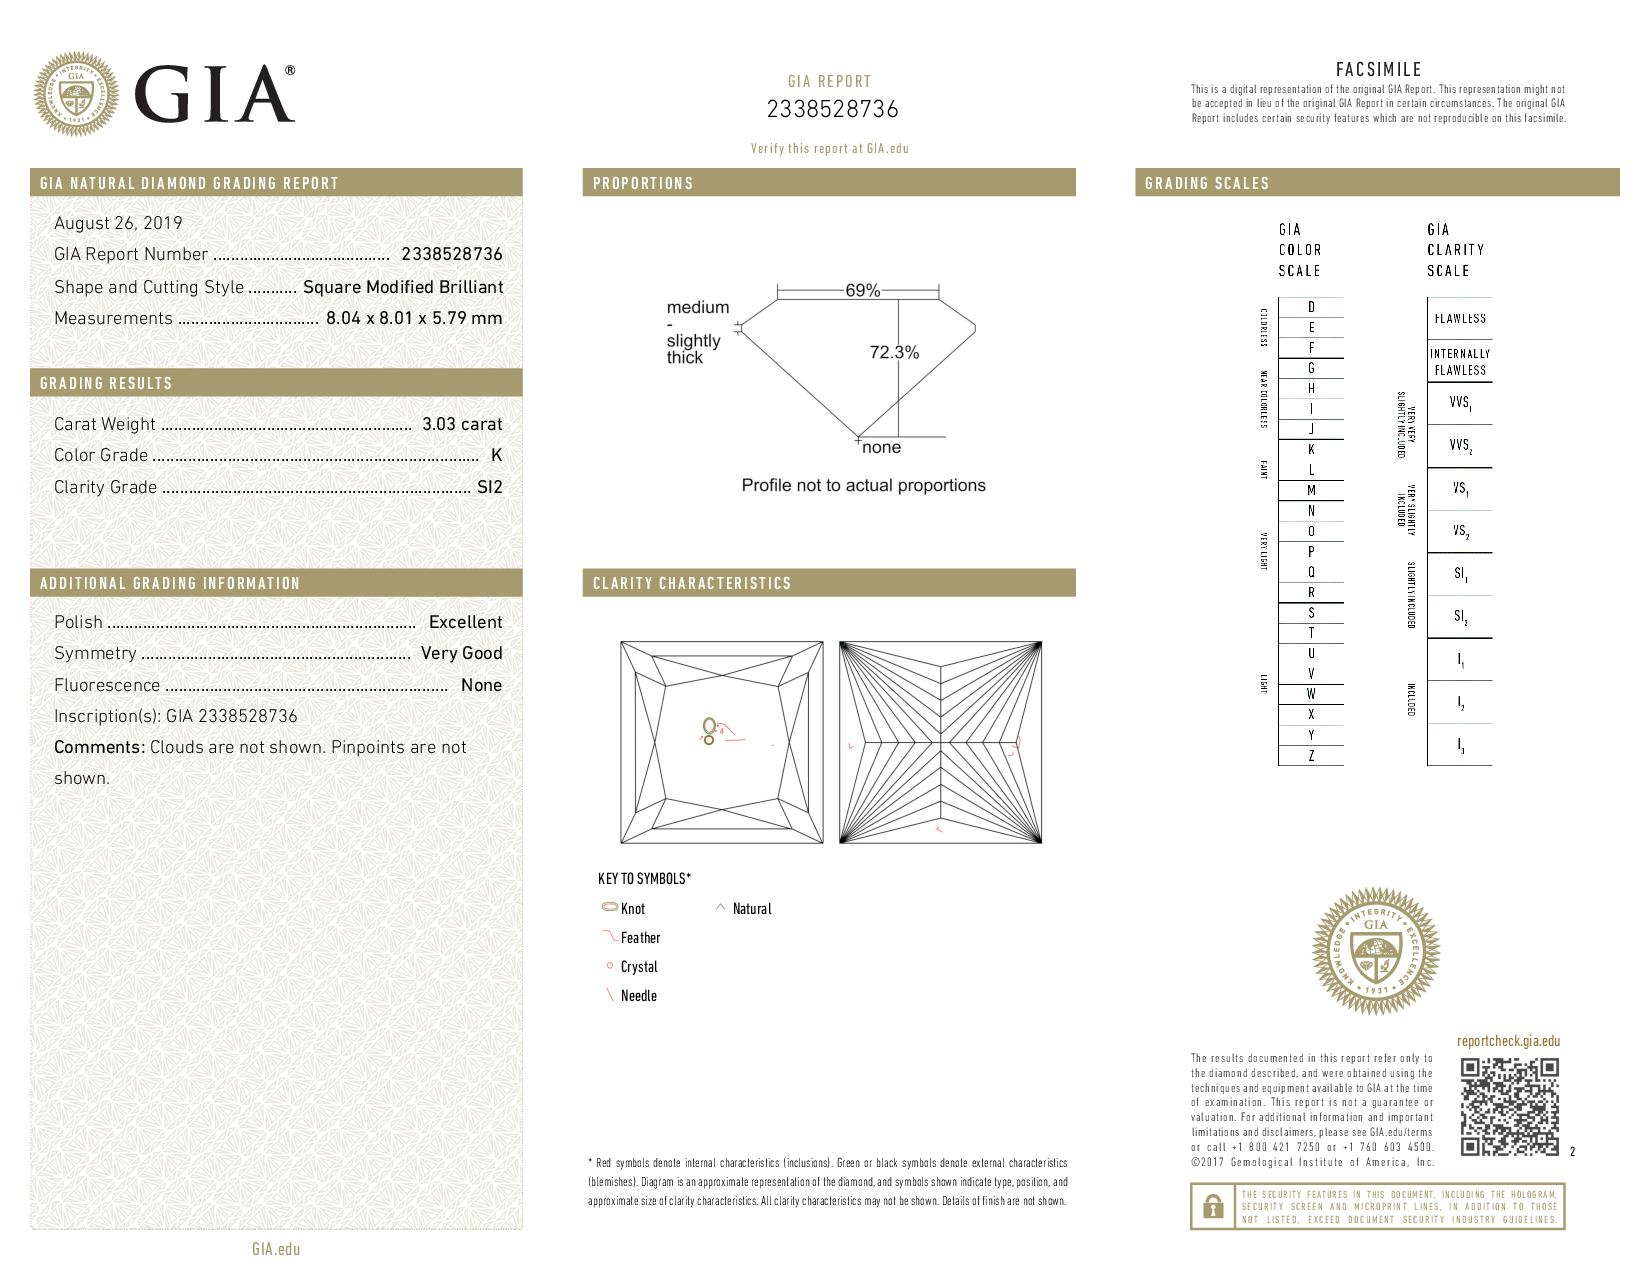 This is a 3.03 carat princess shape, K color, SI2 clarity natural diamond accompanied by a GIA grading report.